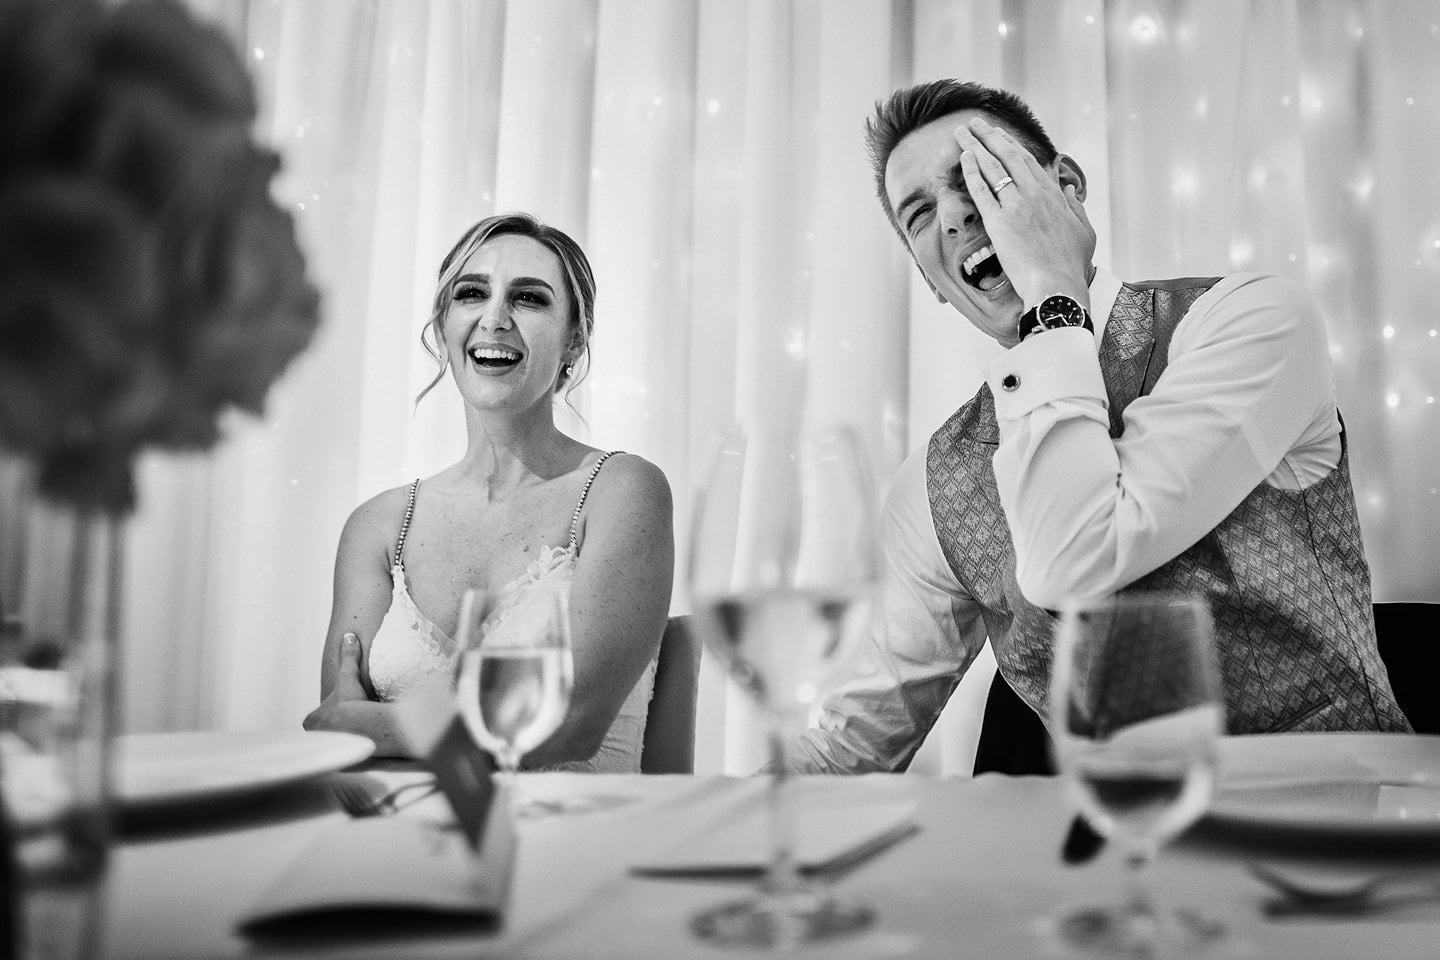 Best of wedding photography collection 2017 - by Aleks & Irena Kus 106